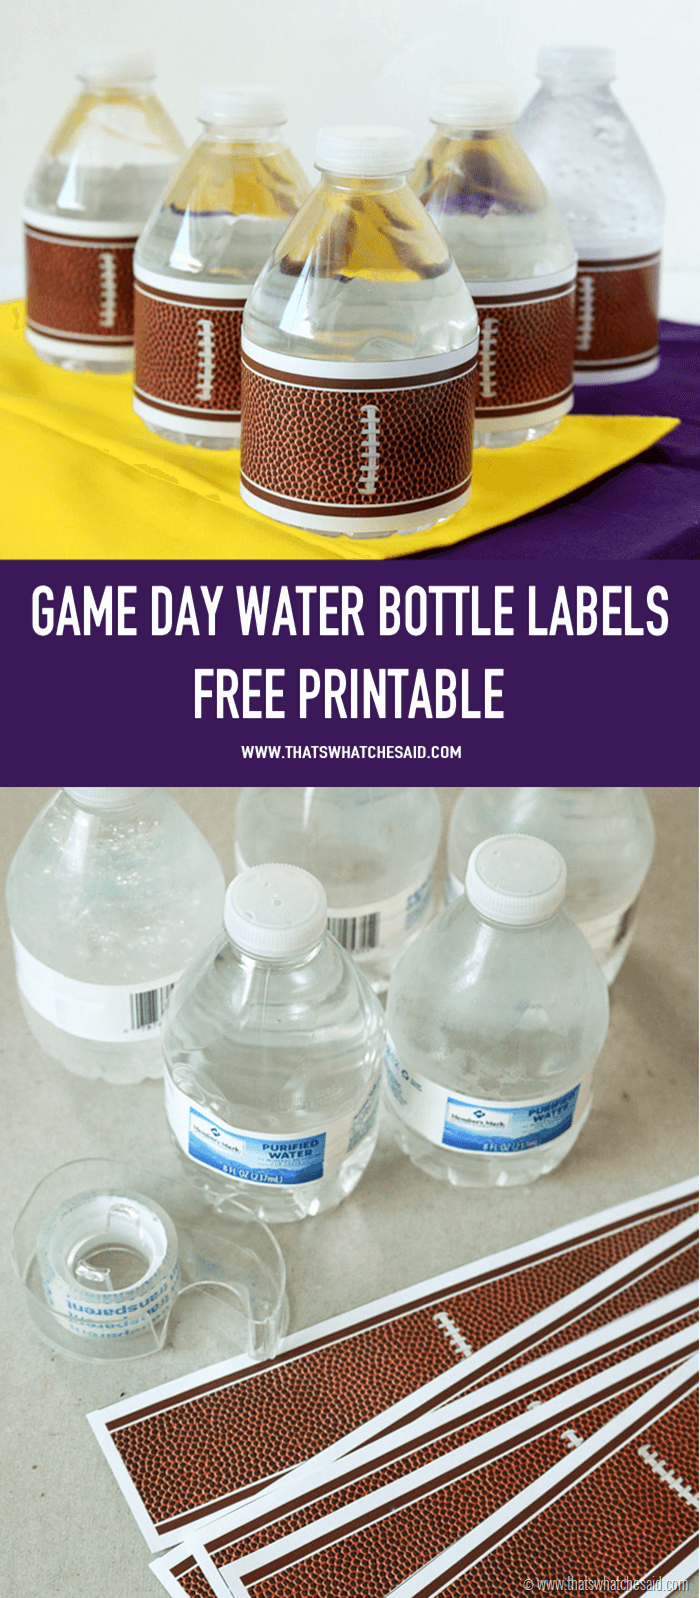 Printable Water Bottle Labels Elegant Football Water Bottle Labels that S What Che Said